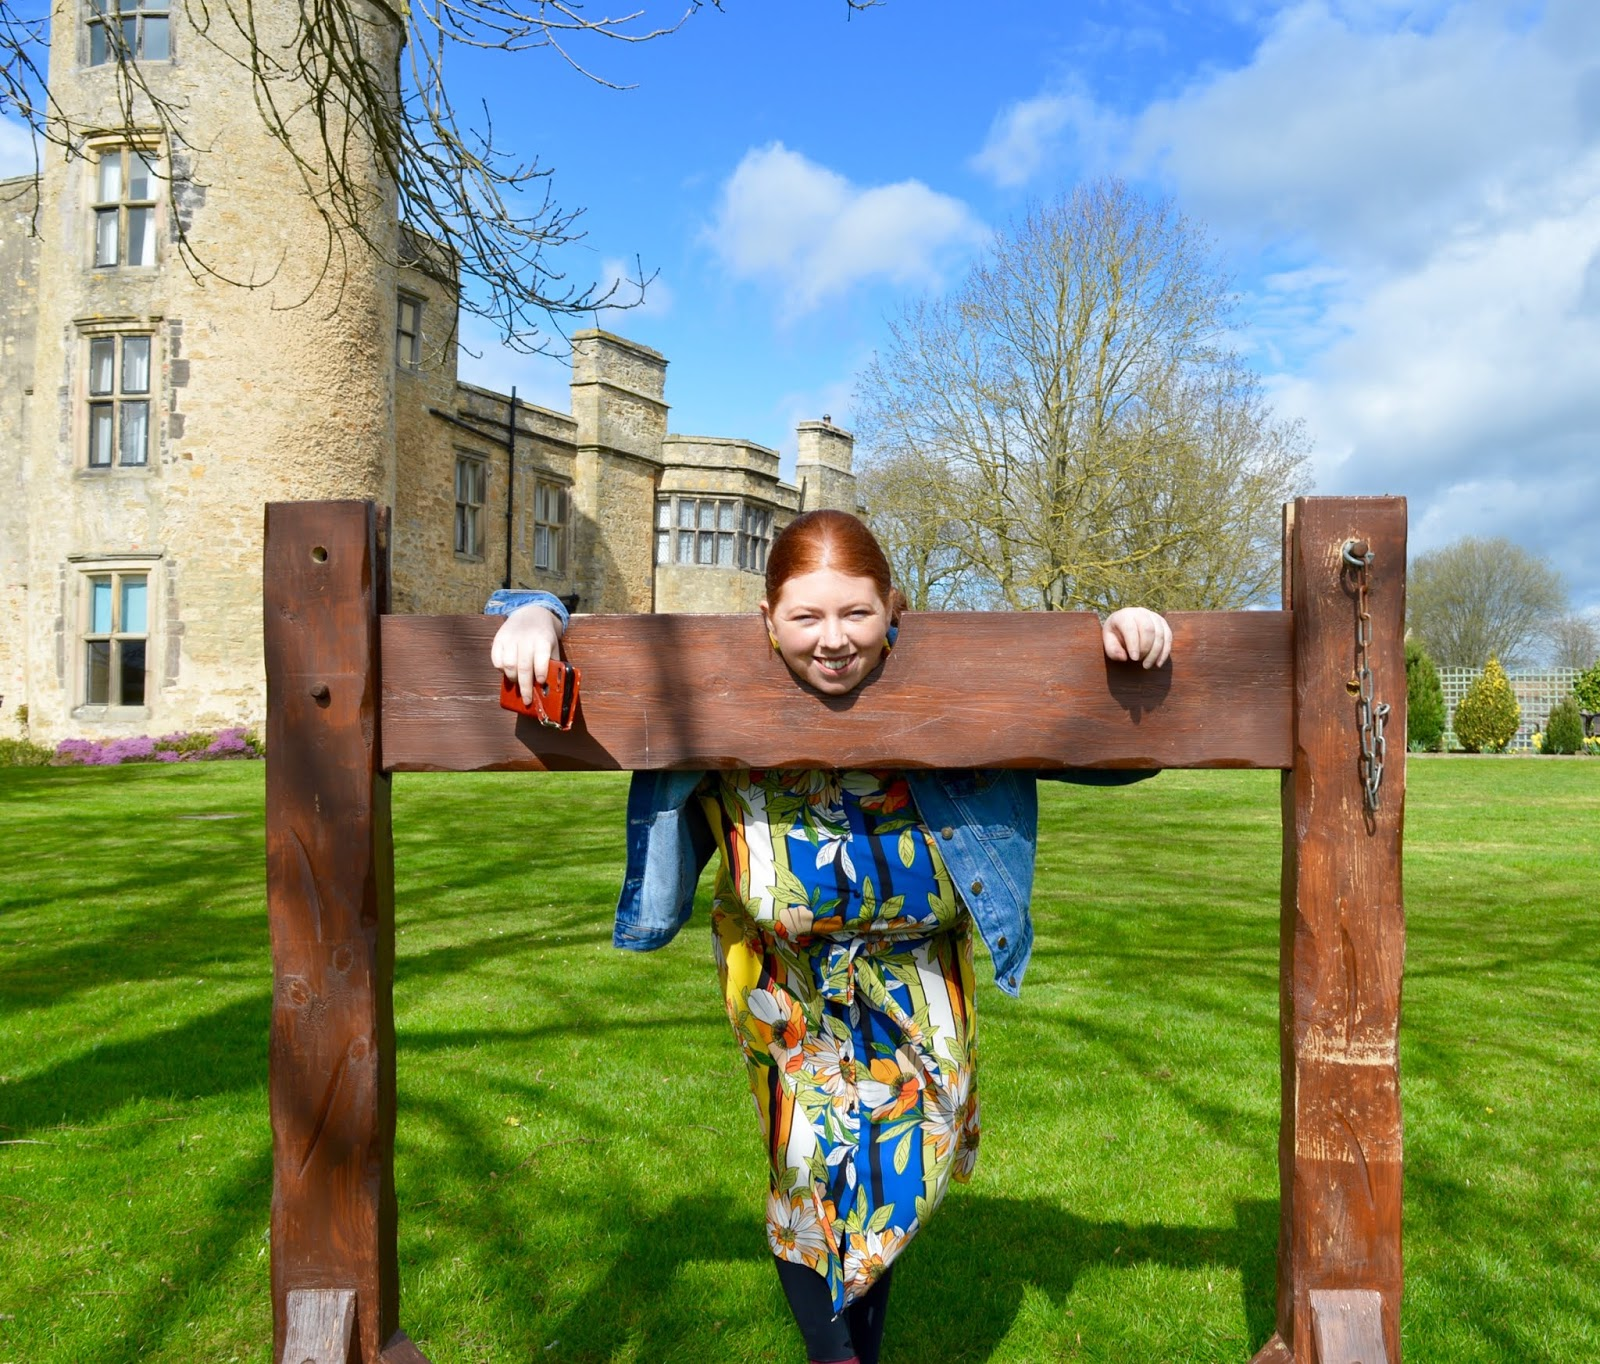 Sunday Lunch, Playgrounds & Birds of Prey at Walworth Castle, Darlington  - in the stocks